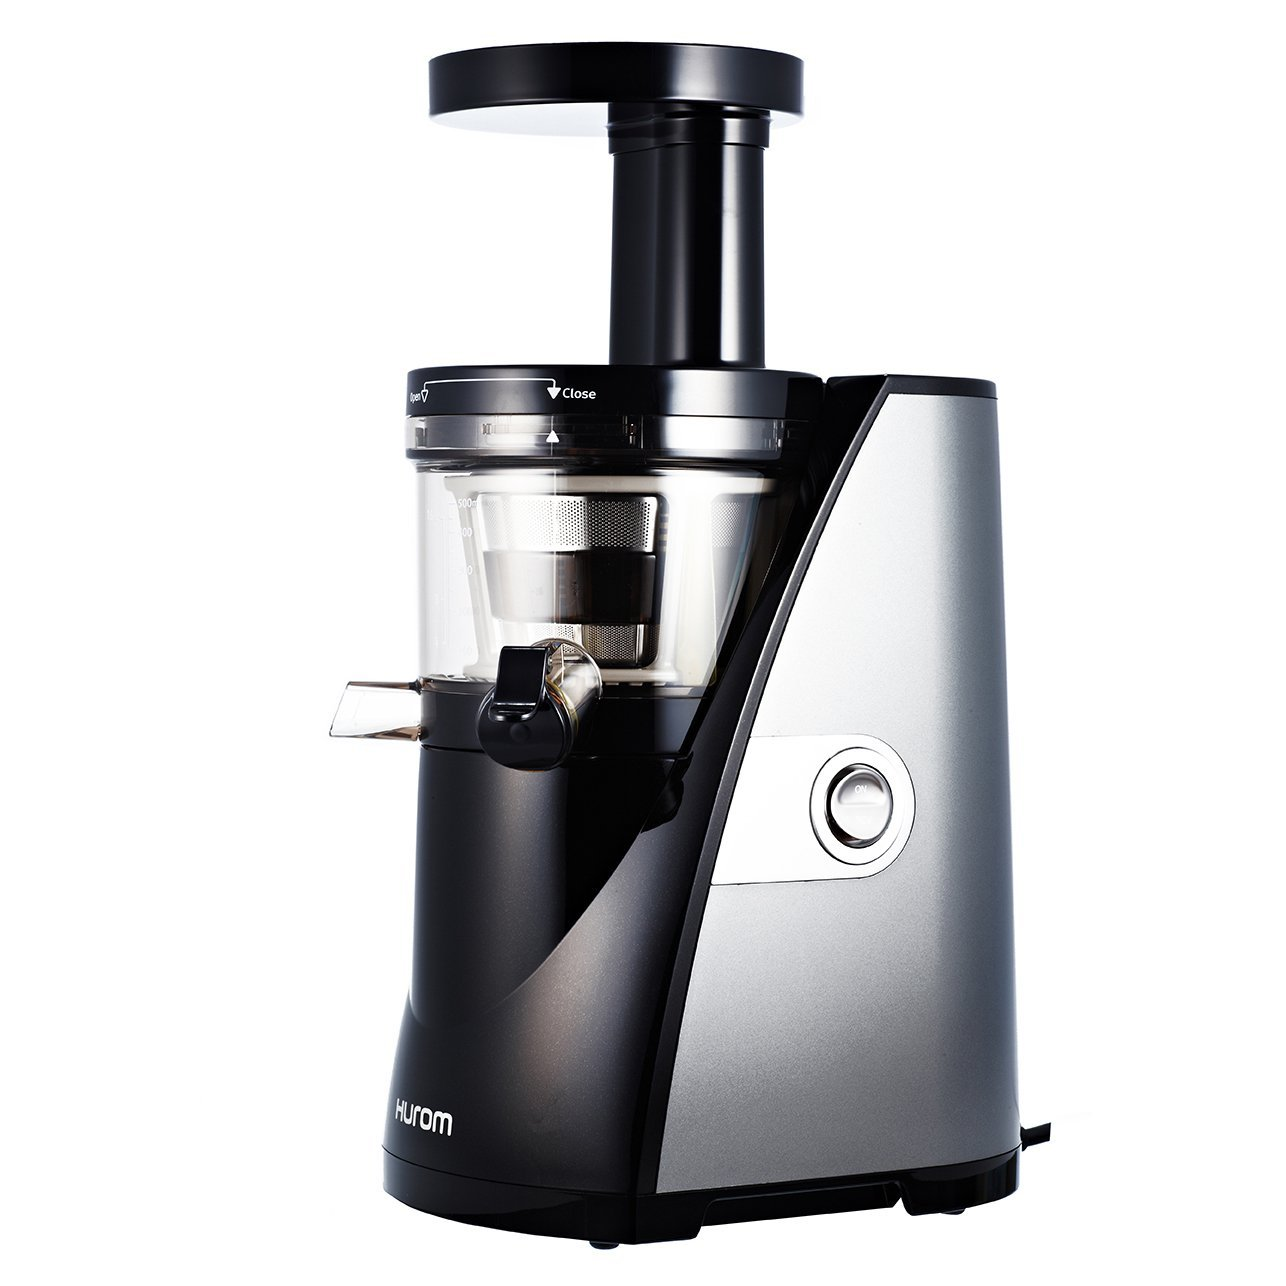 The Best Slow Juicer 2015 : 5 Best Hurom Juicer Reviews UPDATED: 2018 The Home Savant